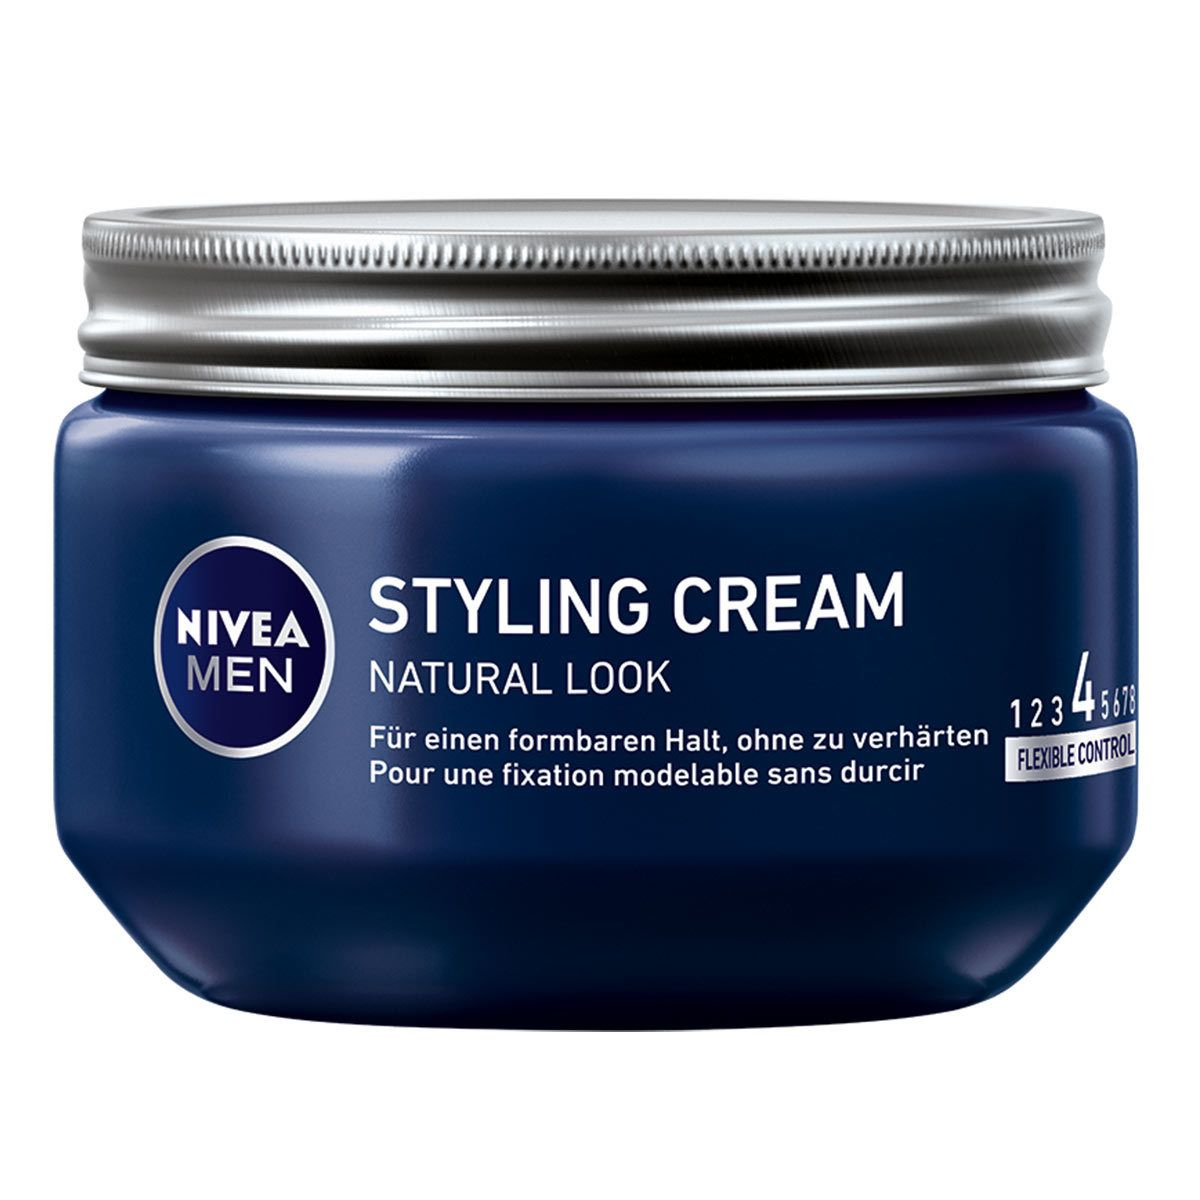 Men Styling Cream Natural Look Styling Cream Nivea Hair Cream